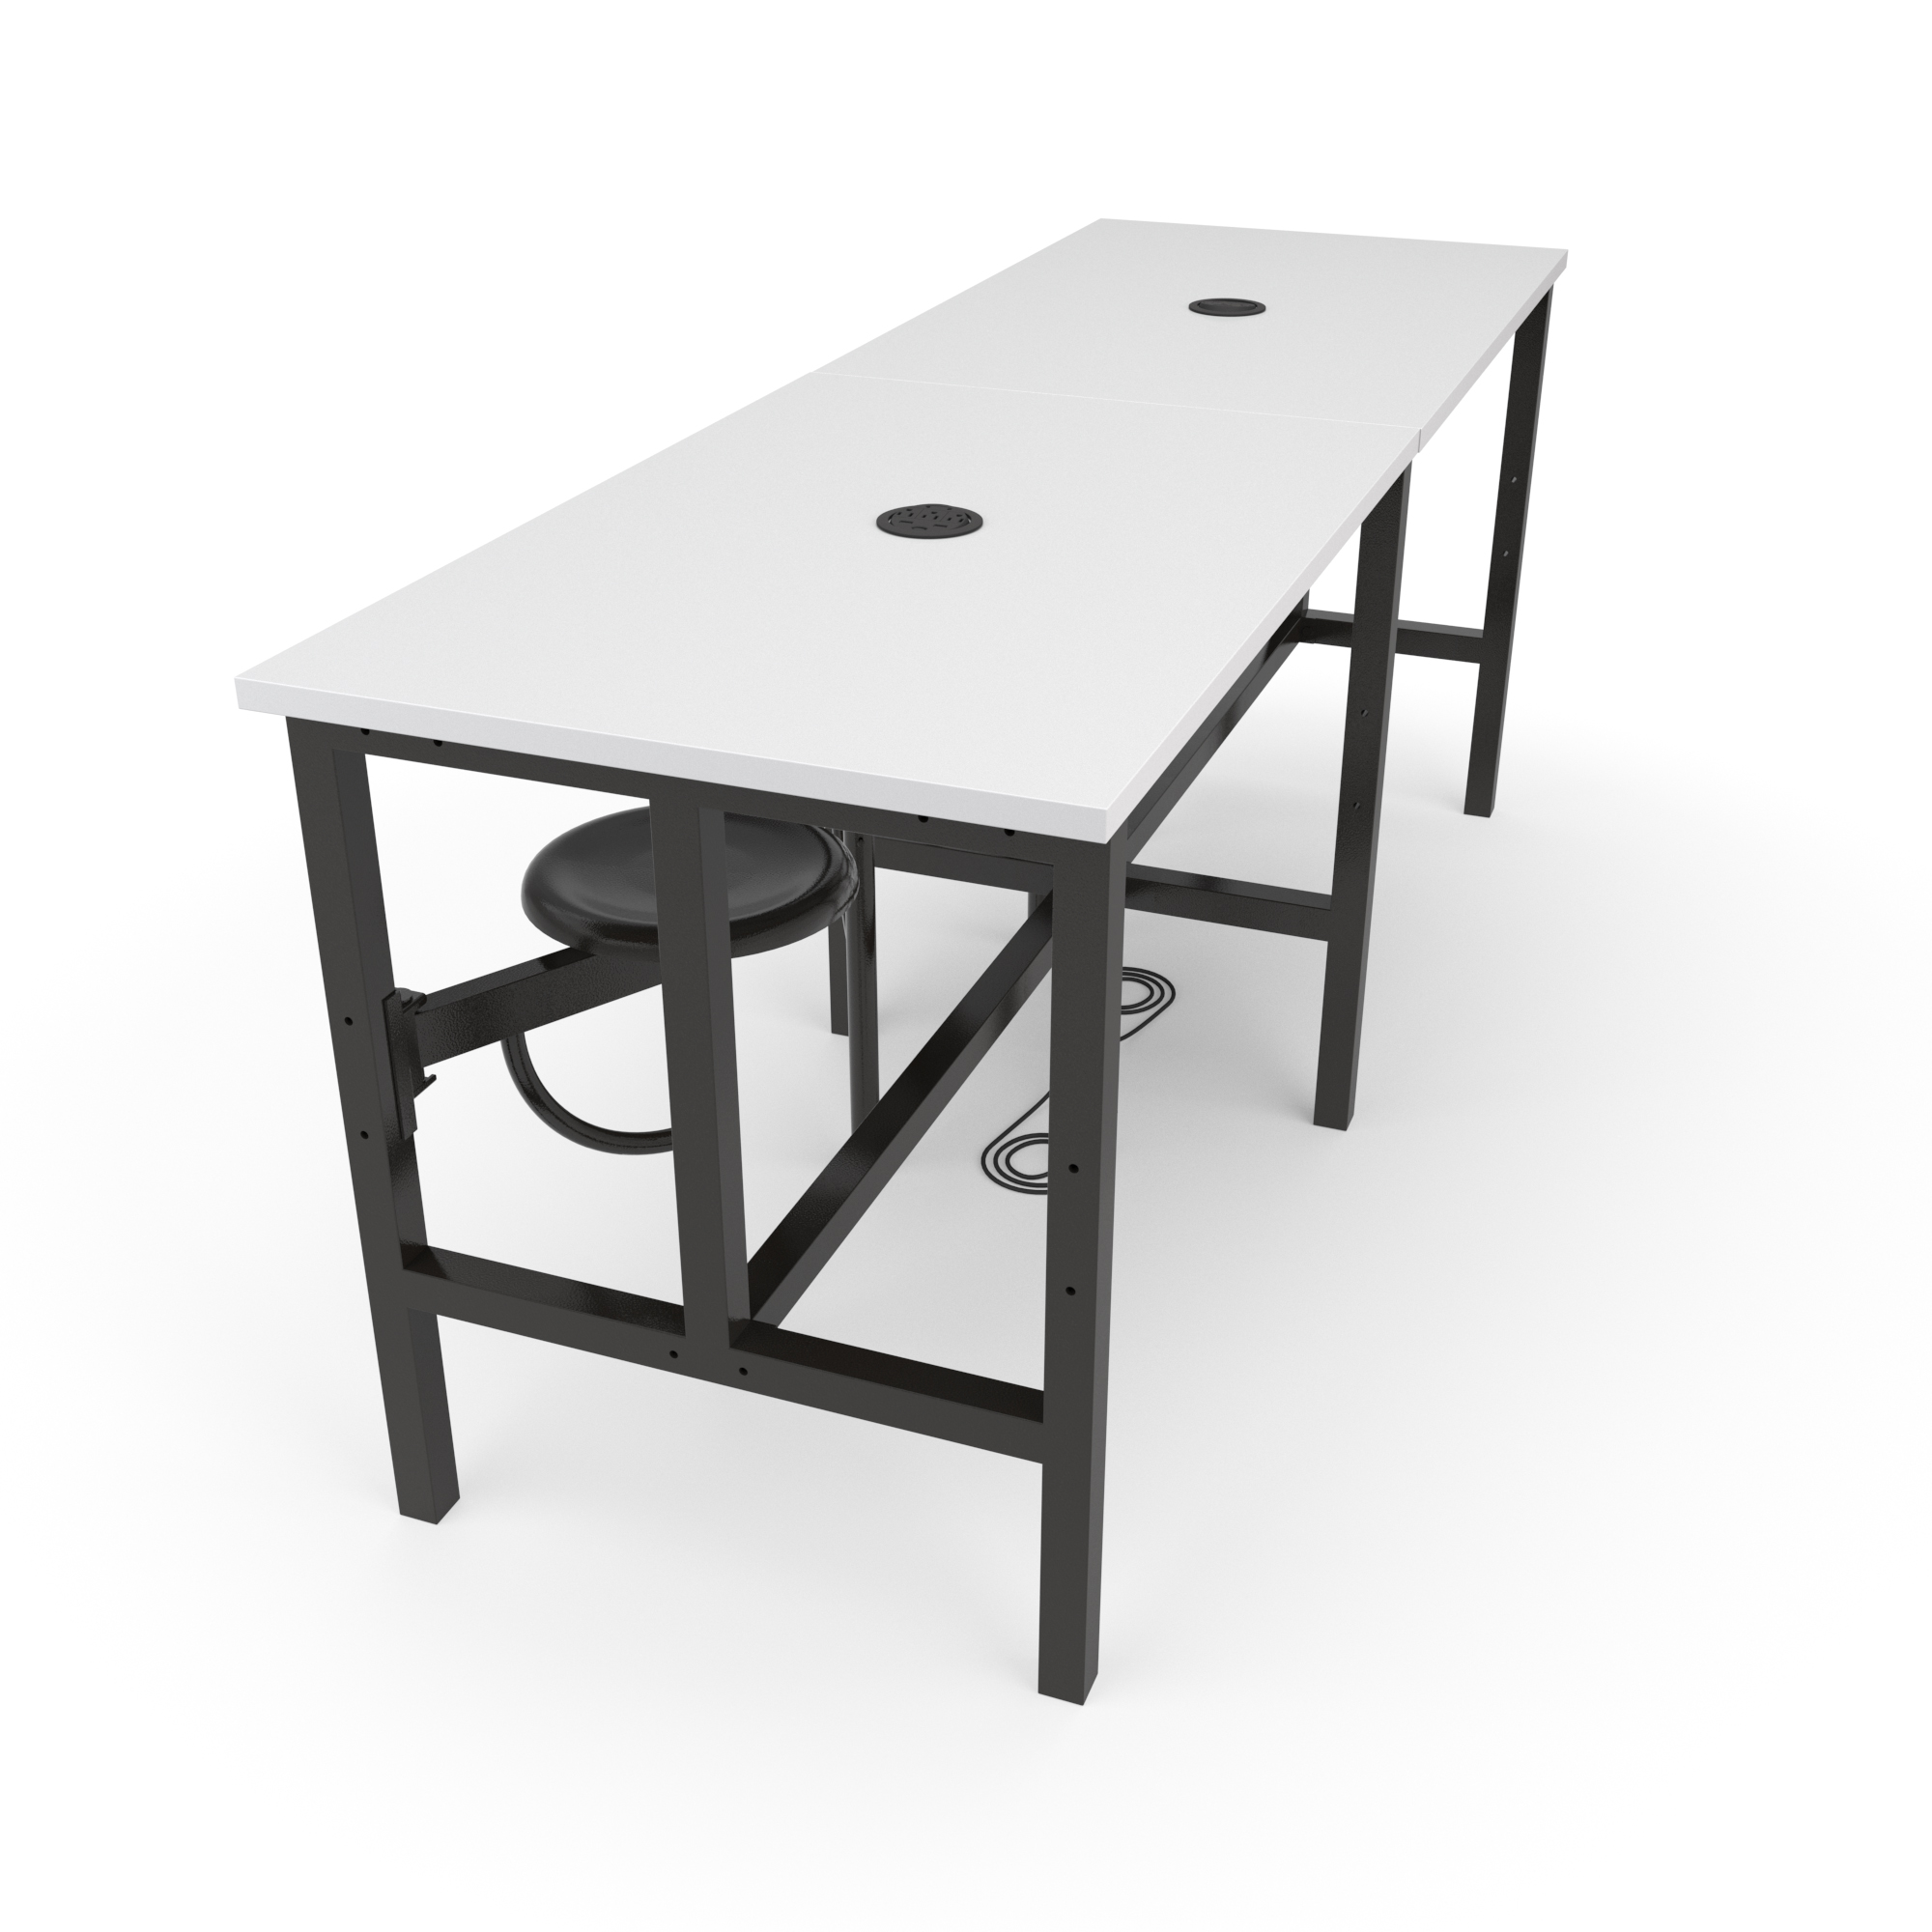 OFM Endure Series Model 9008-4S Standing Height 4 Seat Table, White Dry-Erase Top with Dark Vein Seats